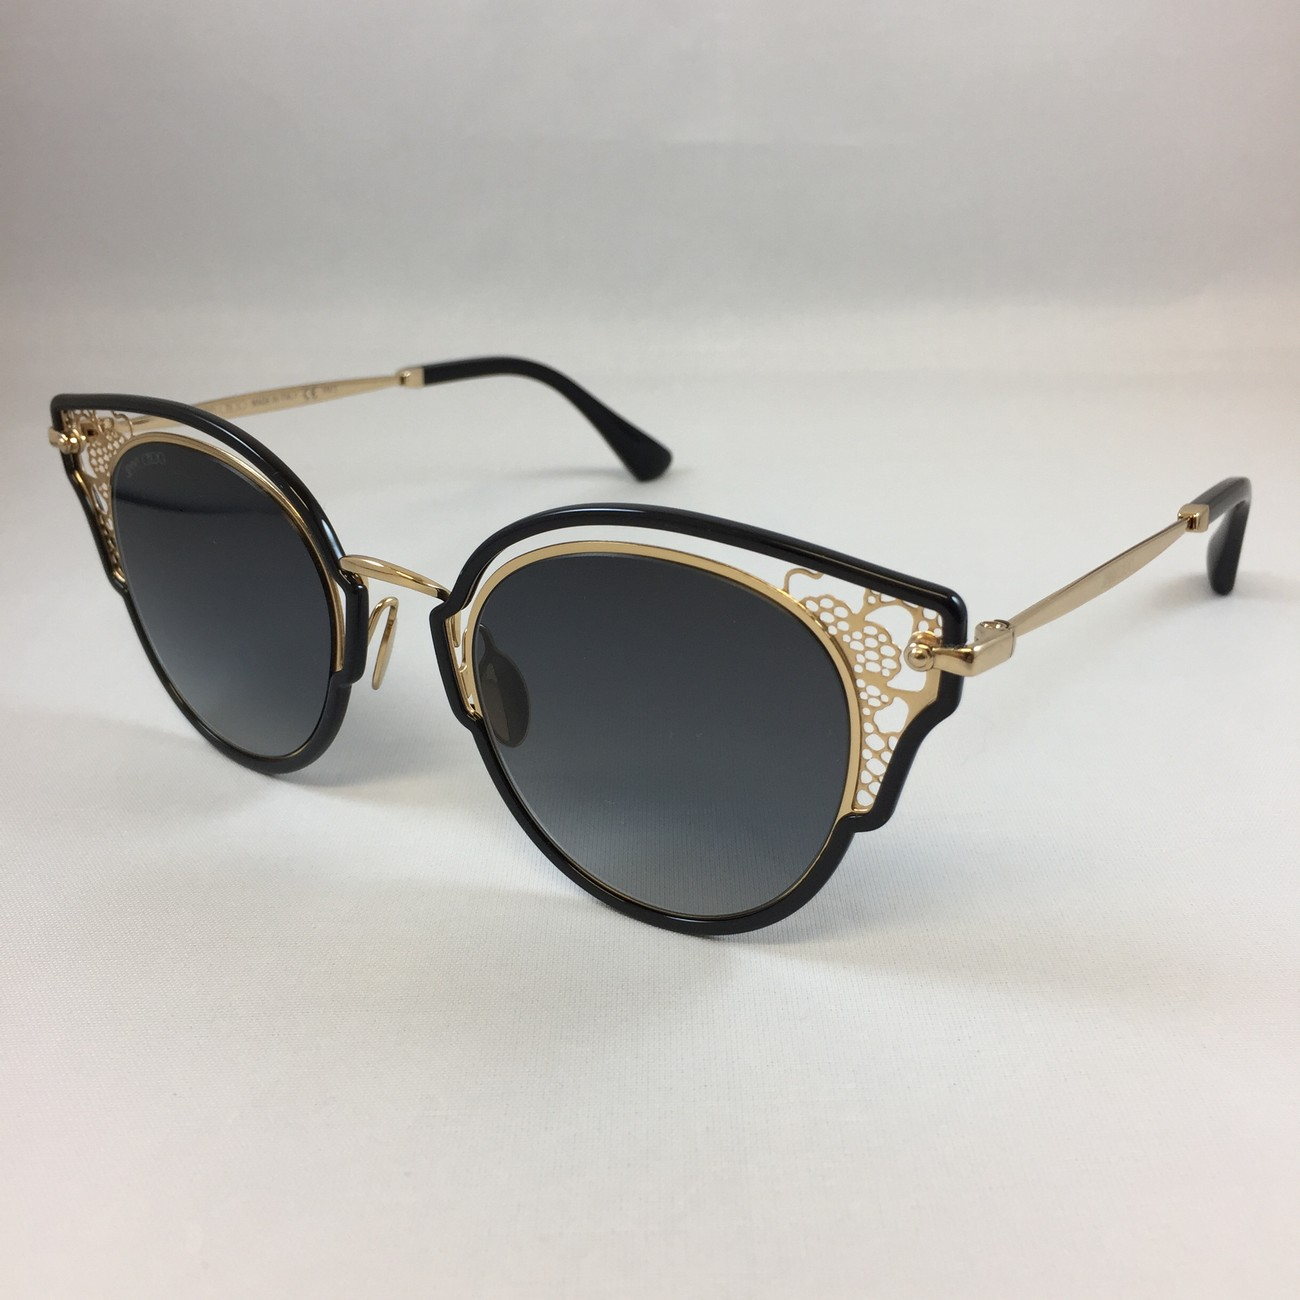 Jimmy Choo Dhelia/S 2M2 black gold